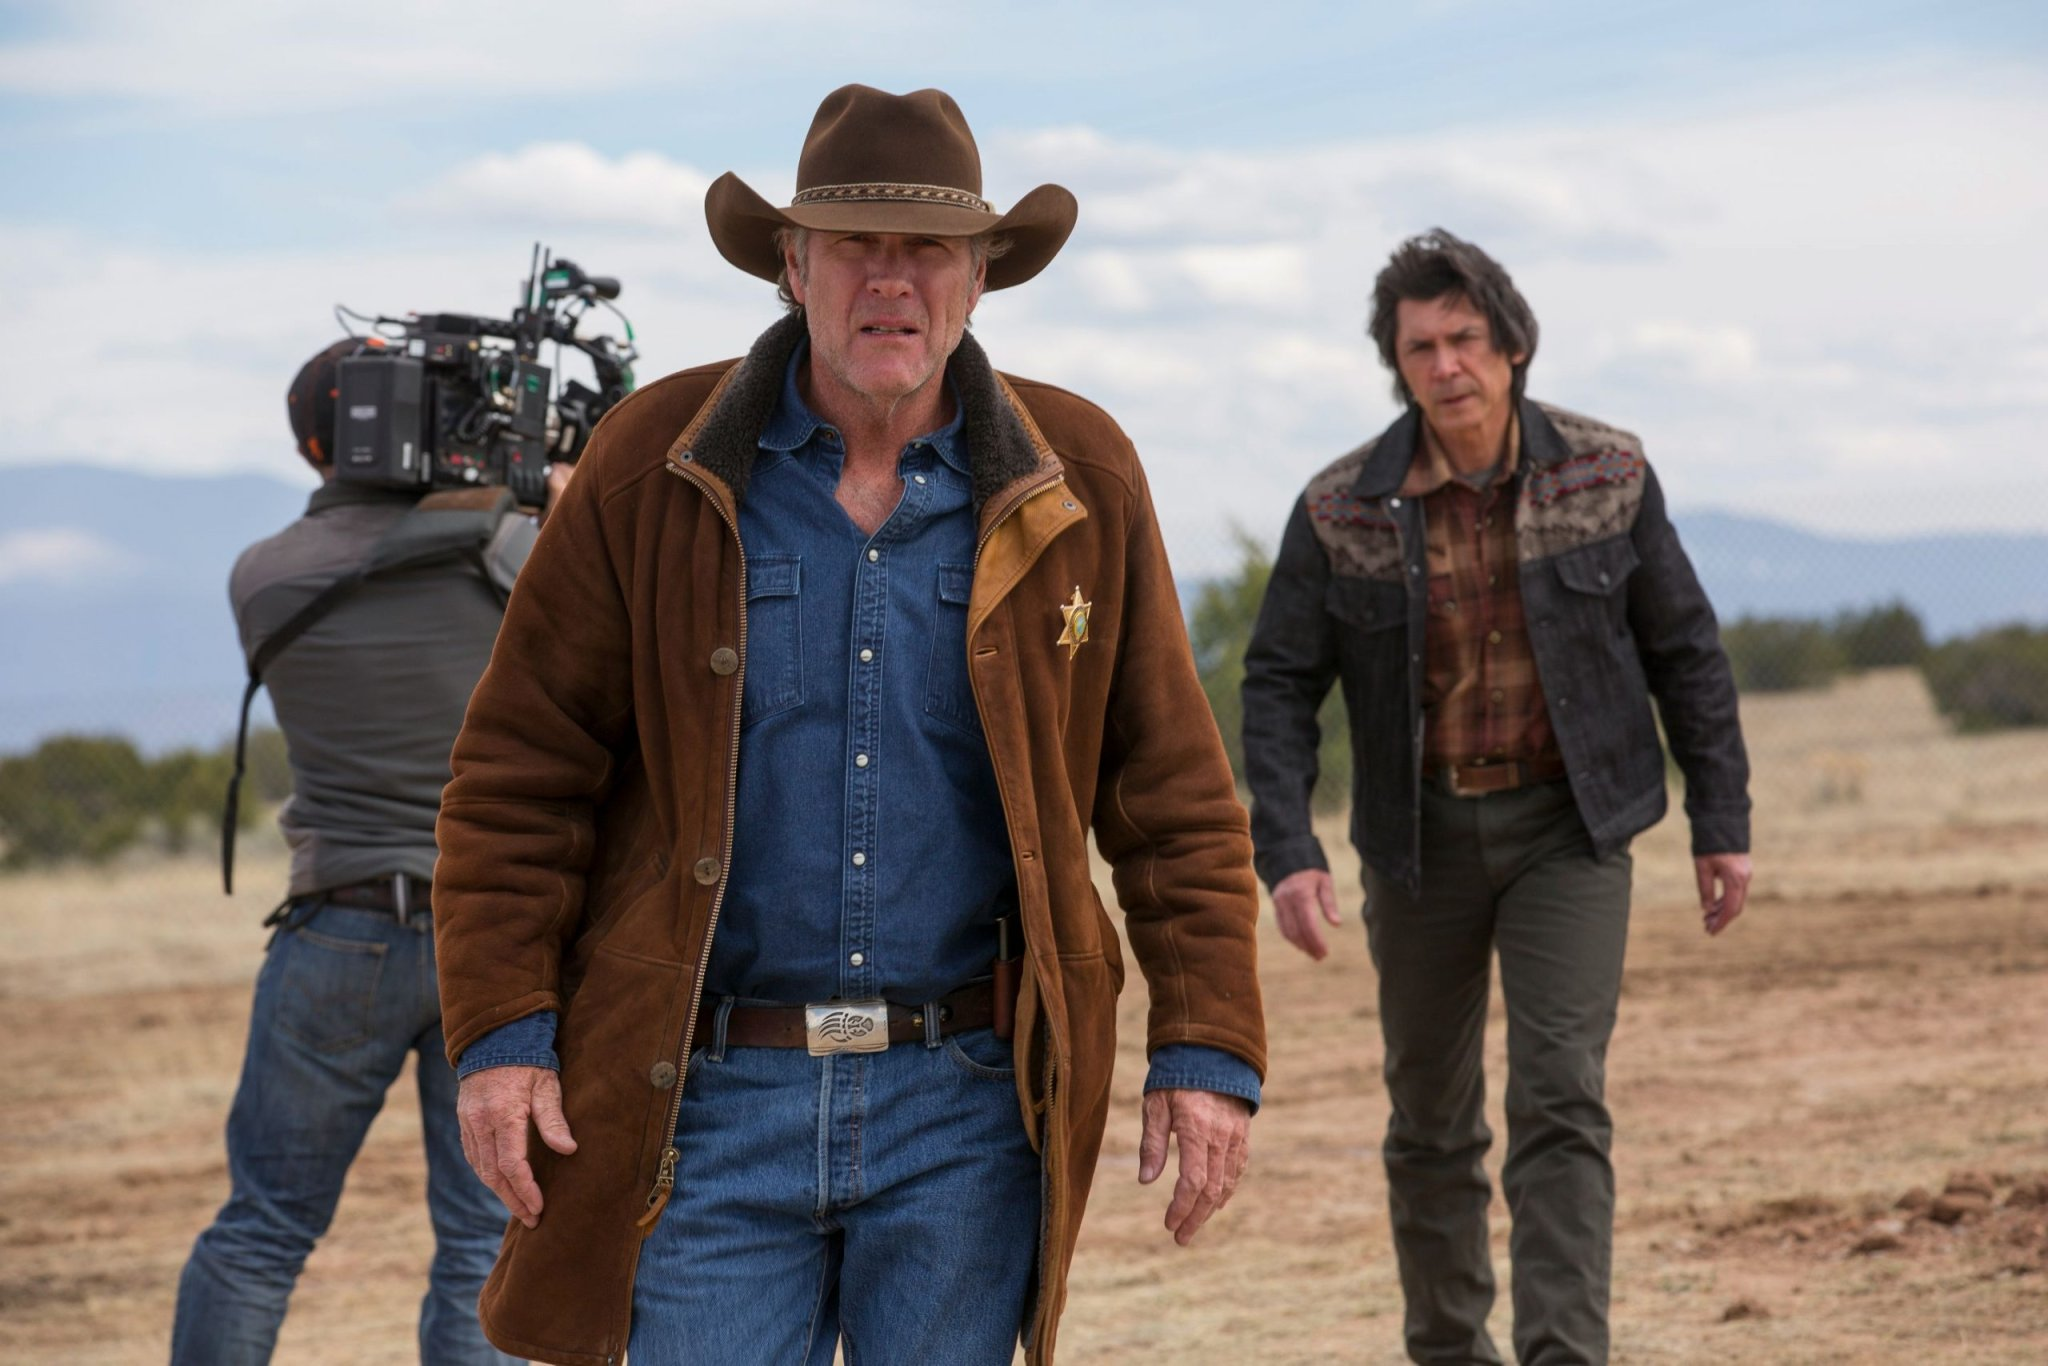 Missing Yellowstone? Here Are 11 Shows and Movies That Might Scratch Your Western Itch